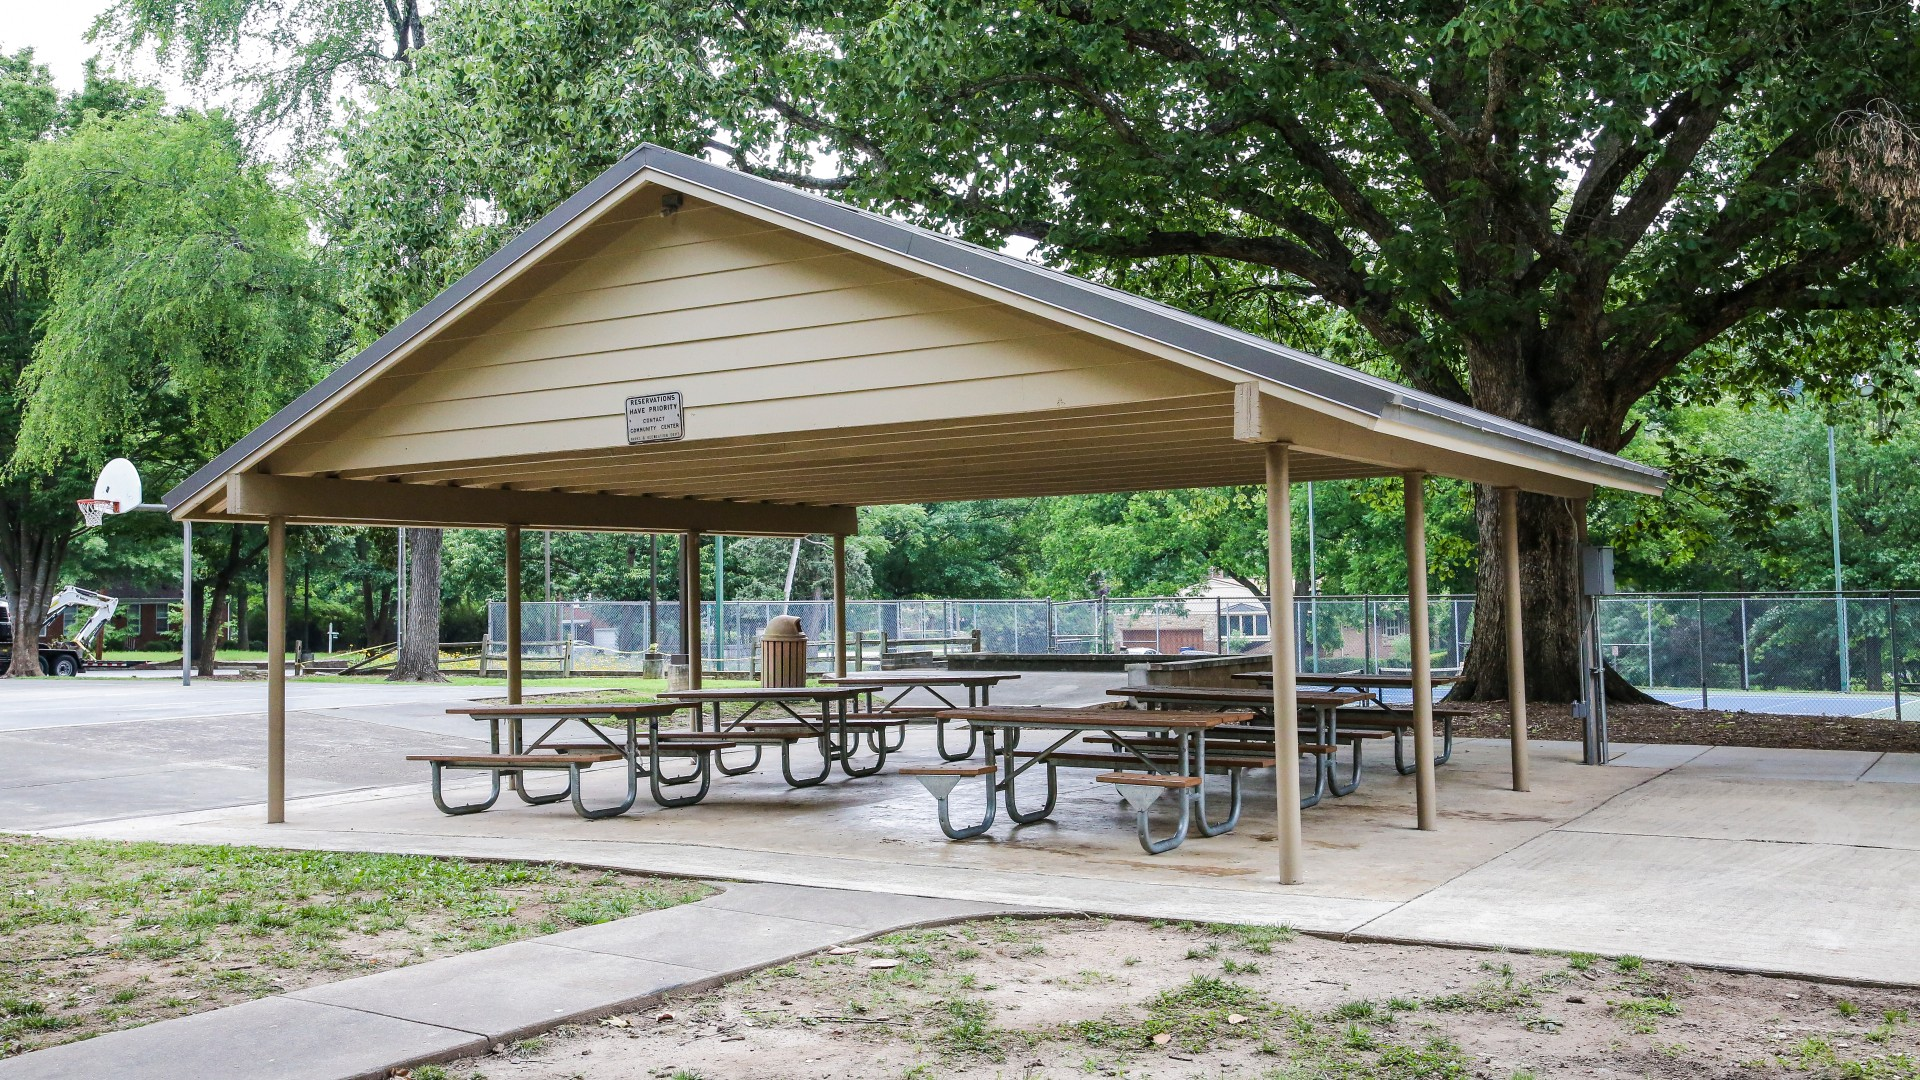 A large outdoor picnic shelter with six tables